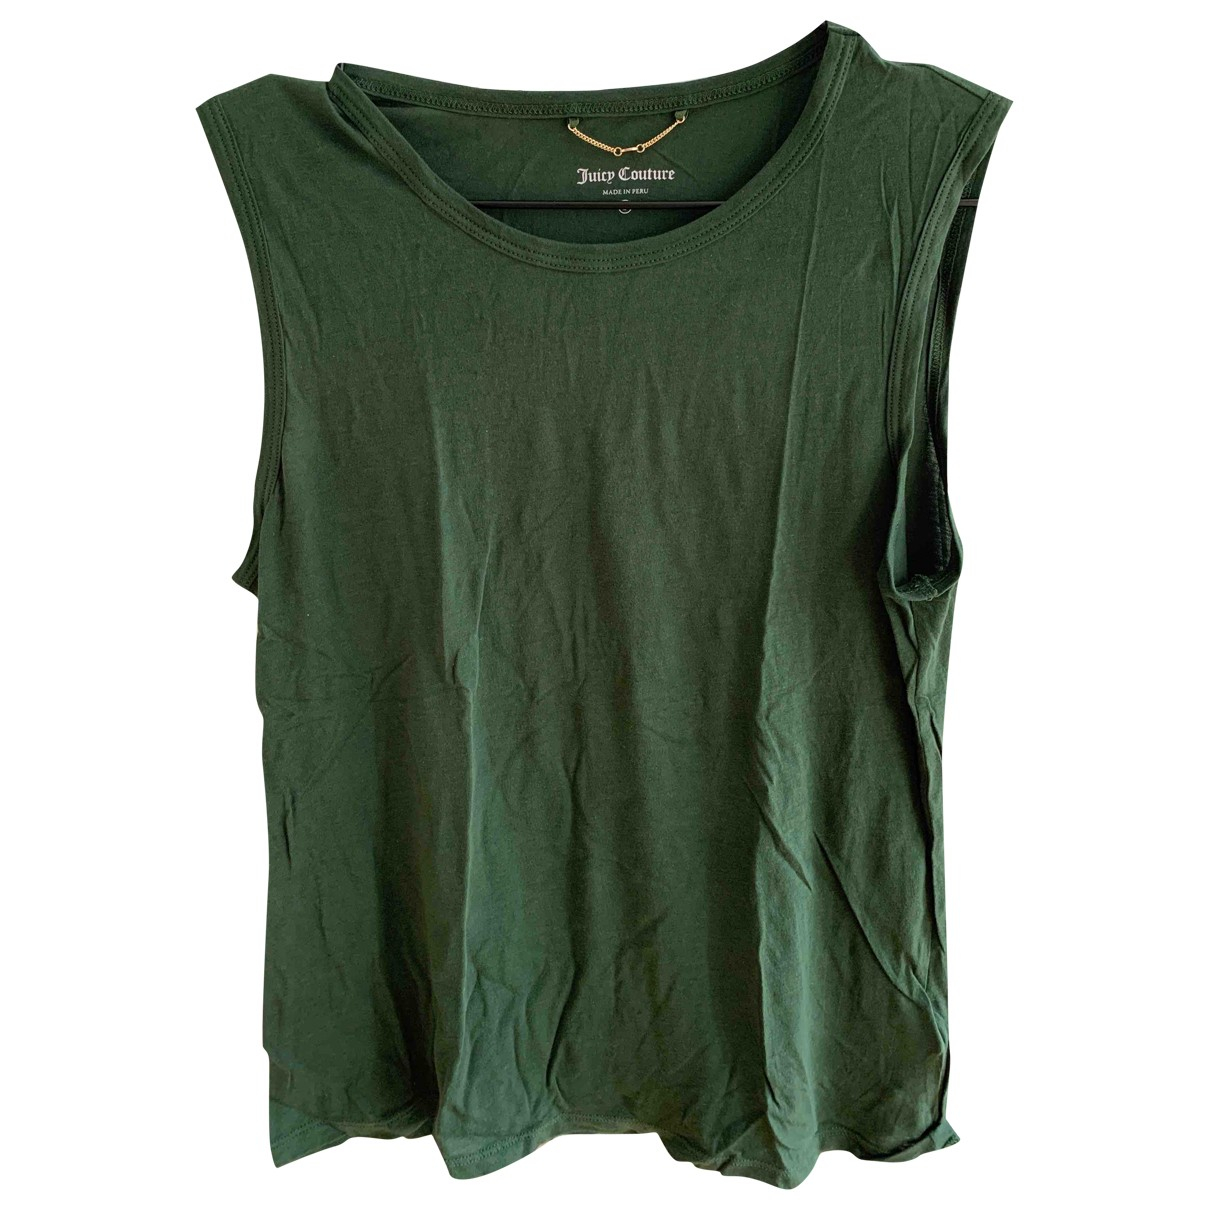 Juicy Couture \N Green Cotton  top for Women S International